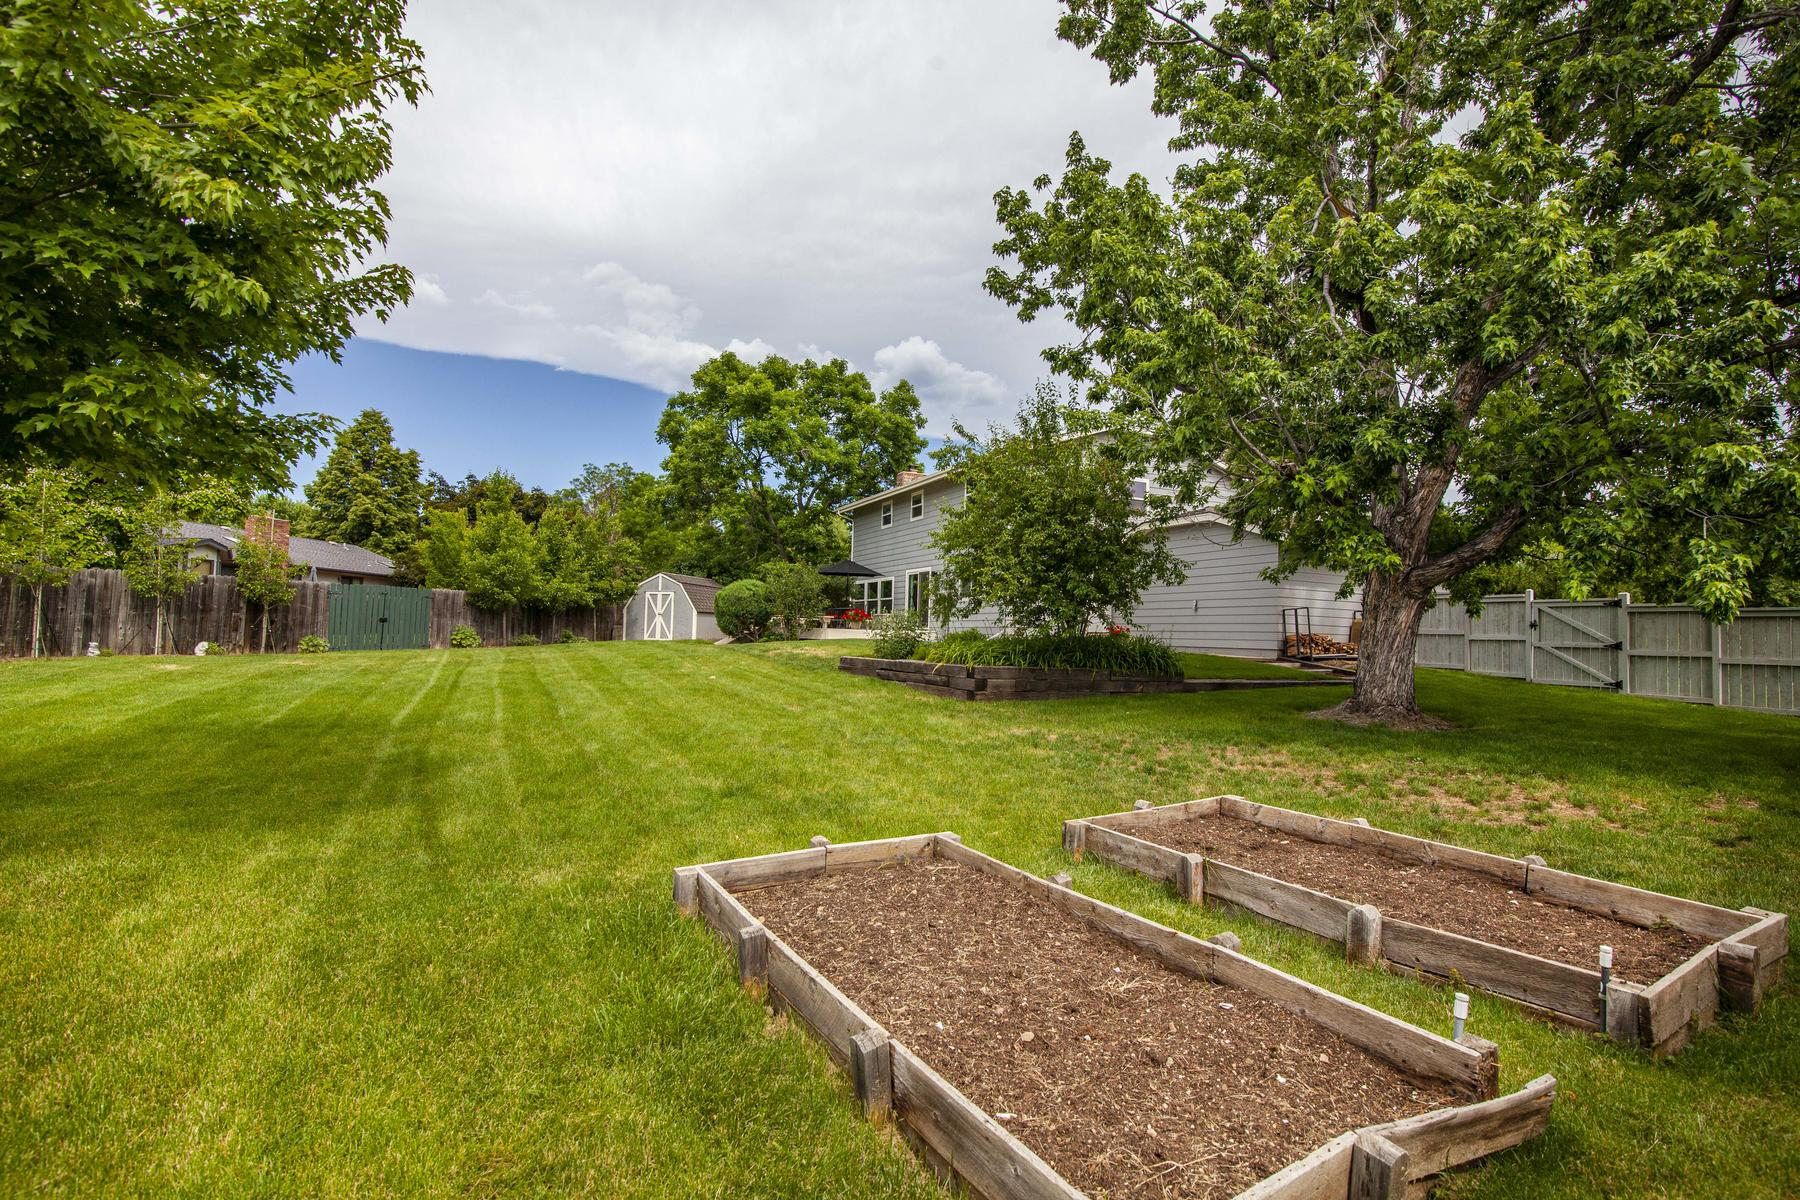 Single Family Homes for Active at Beautiful And Spacious Remodeled Orange Orchard Gem 4302 Apple Wy Boulder, Colorado 80301 United States